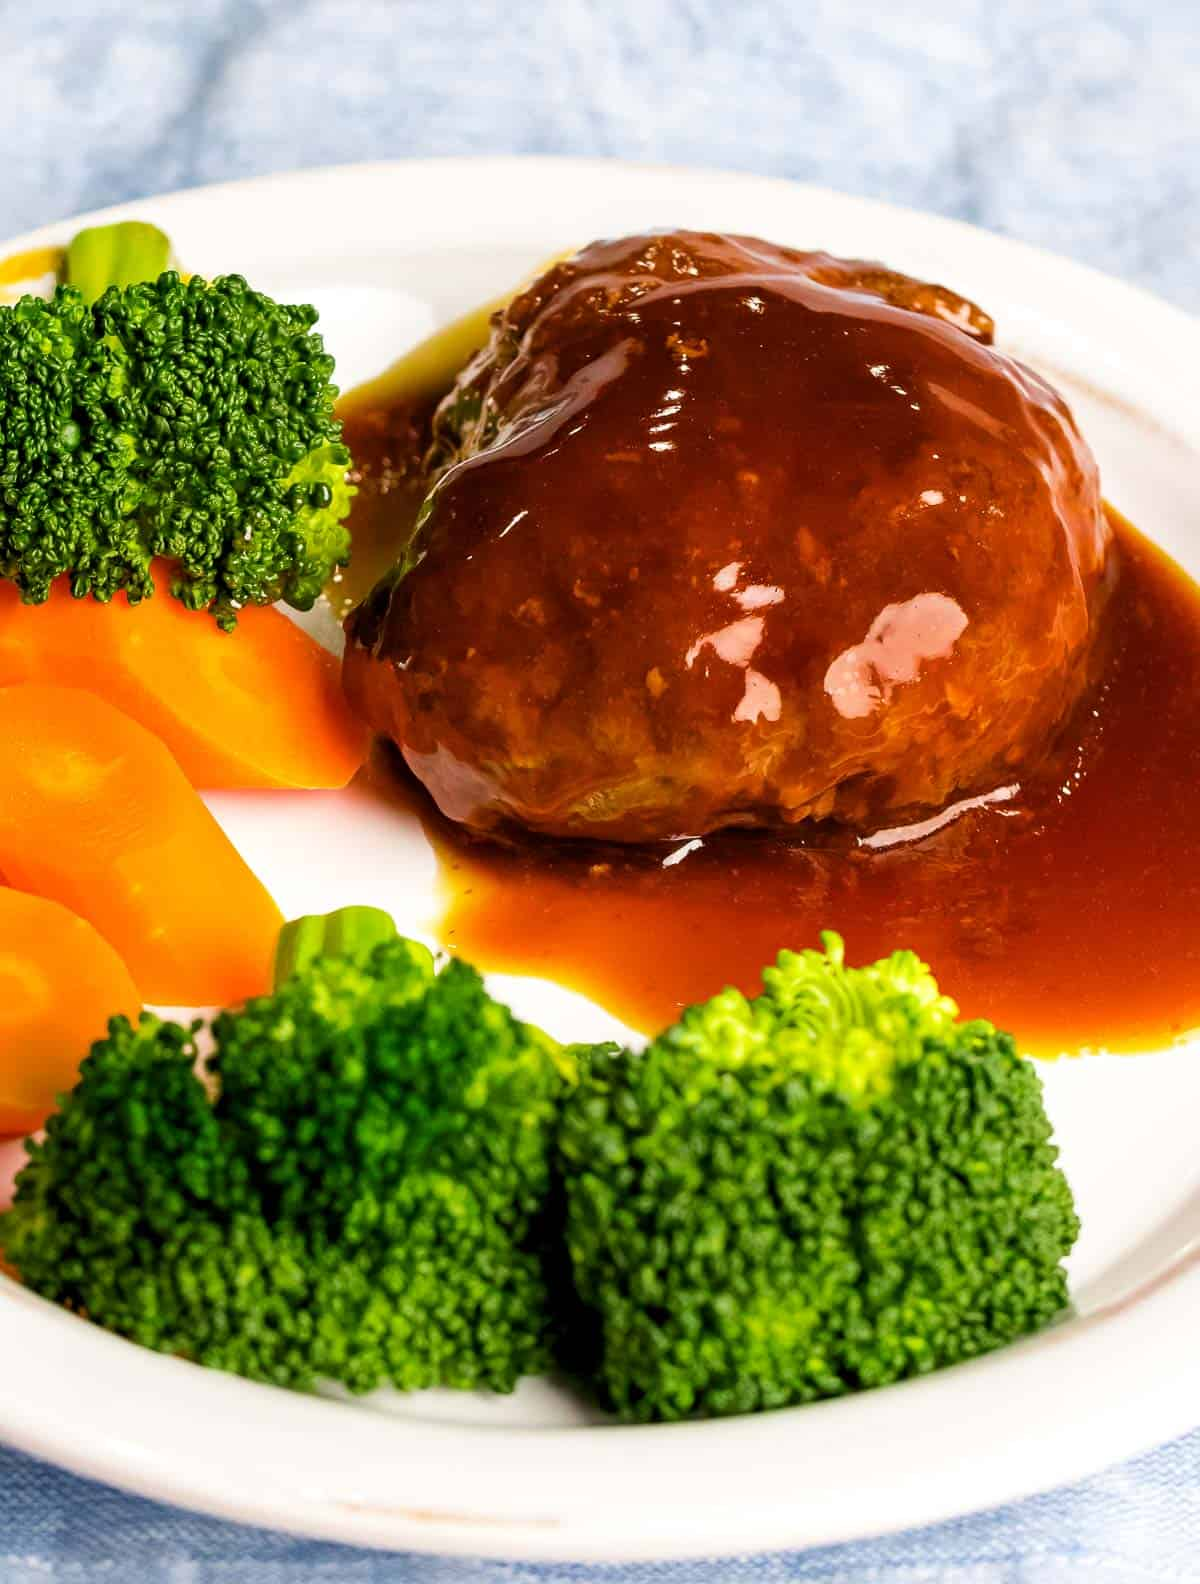 Juicy, tender Japanese hamburger steak (hambāgu ハンバーグ) covered in tangy brown gravy on a white plate next to carrots and broccoli.